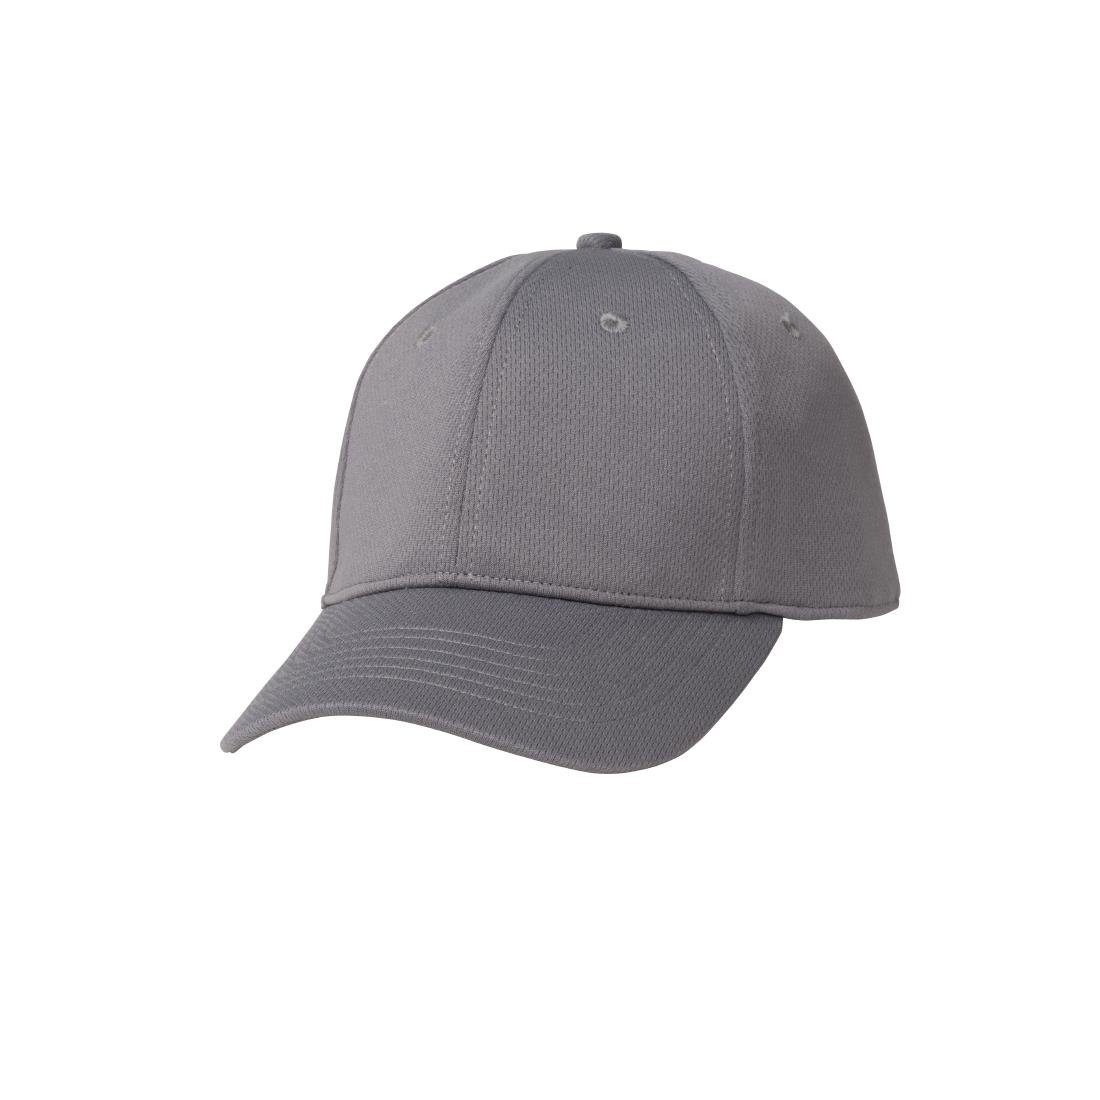 Image of Chef Works Cool Vent Baseball Cap Grey